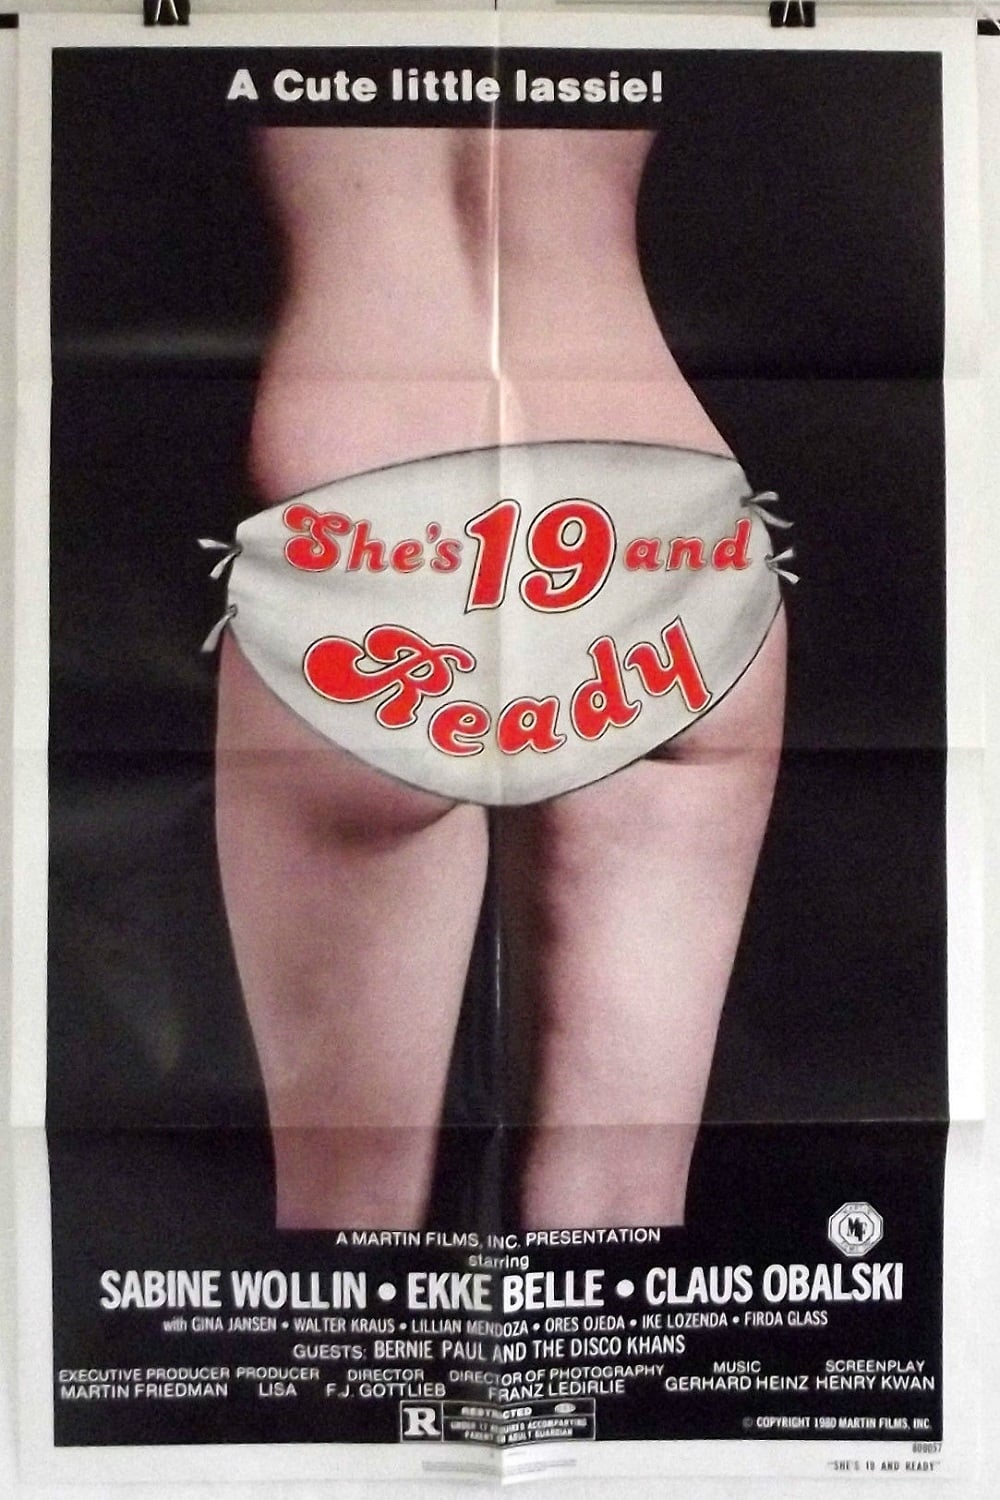 She's 19 and Ready (1979)